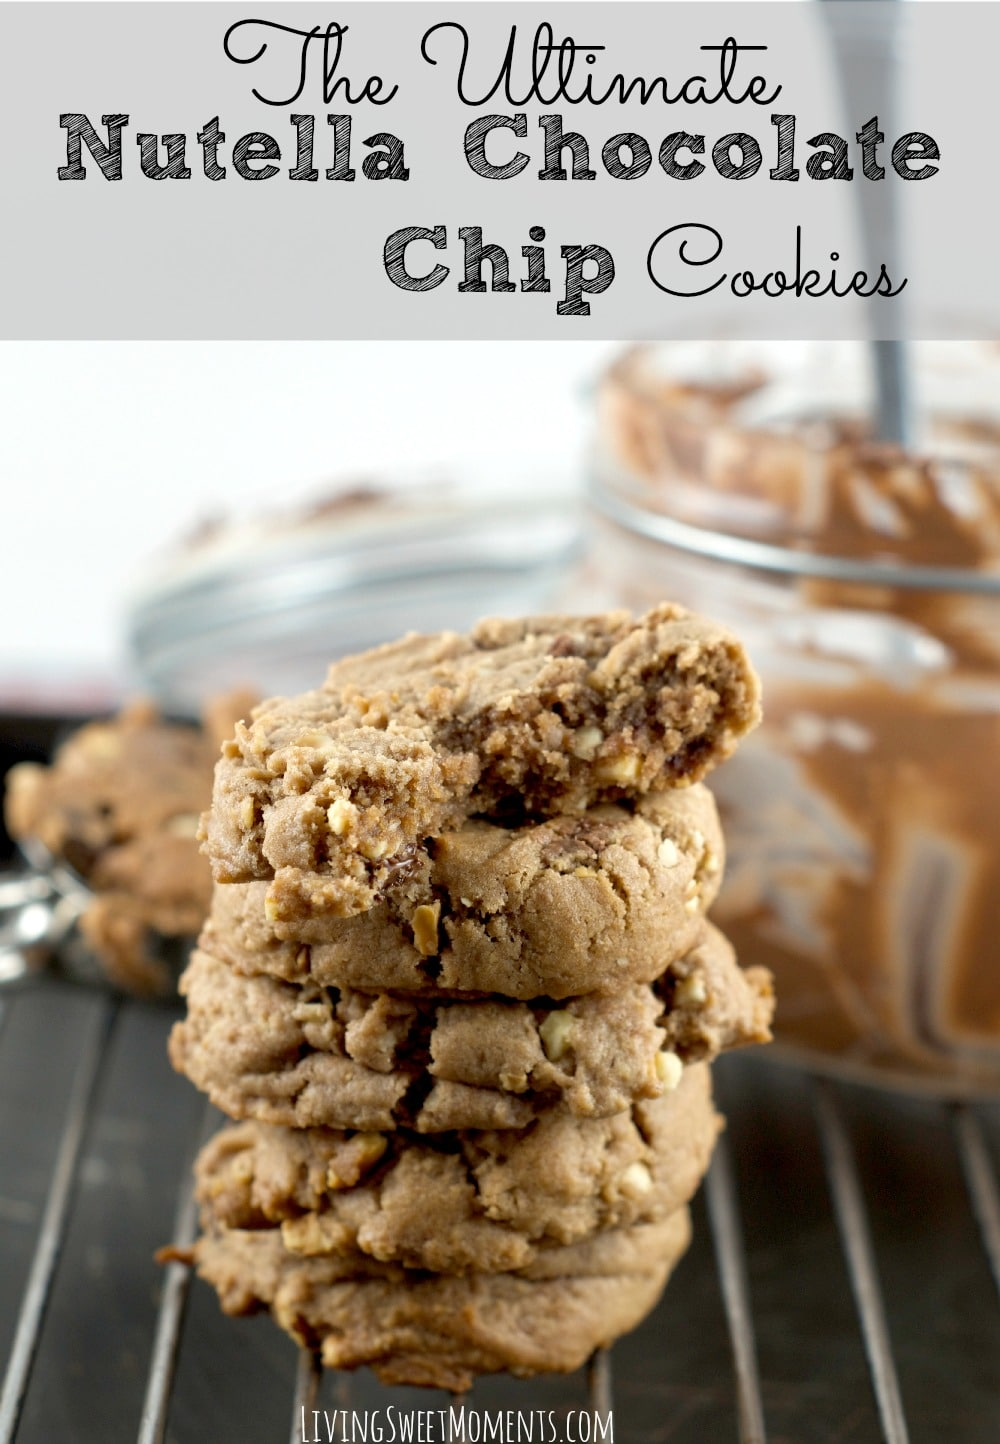 nutella-chocolate-chip-cookies-recipe-cover